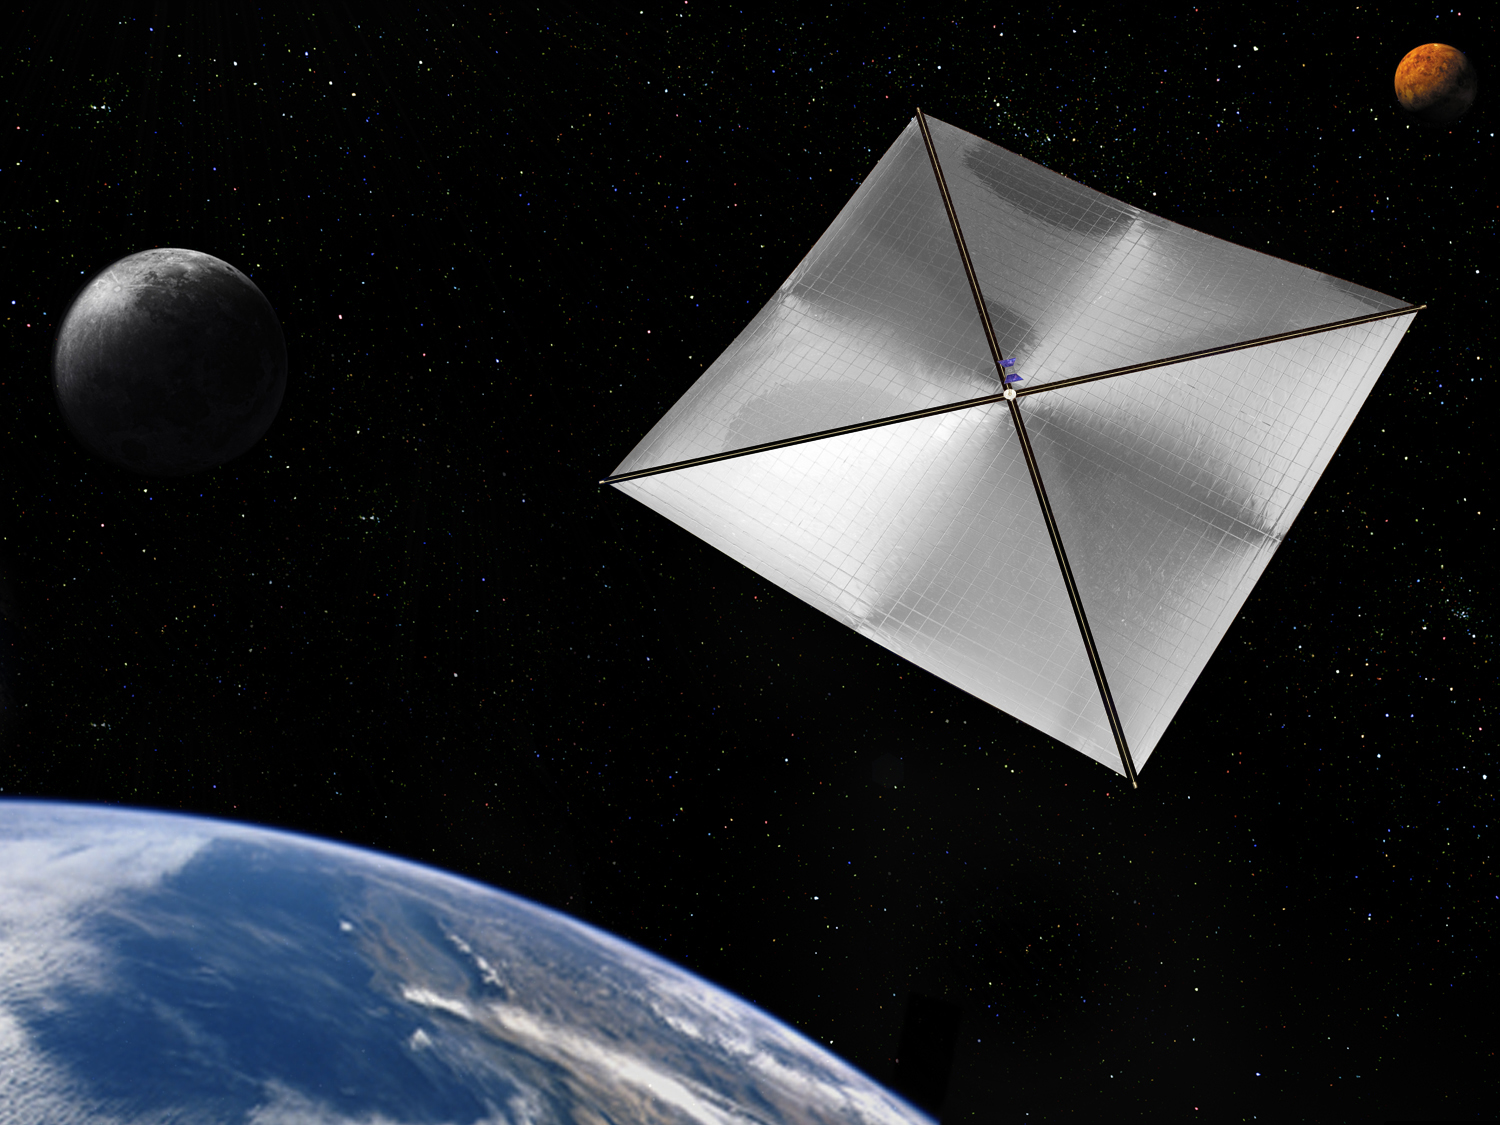 Solar sail. A few kilometers wide, this type of spaceship propulsion utilizes light rays to move forward.